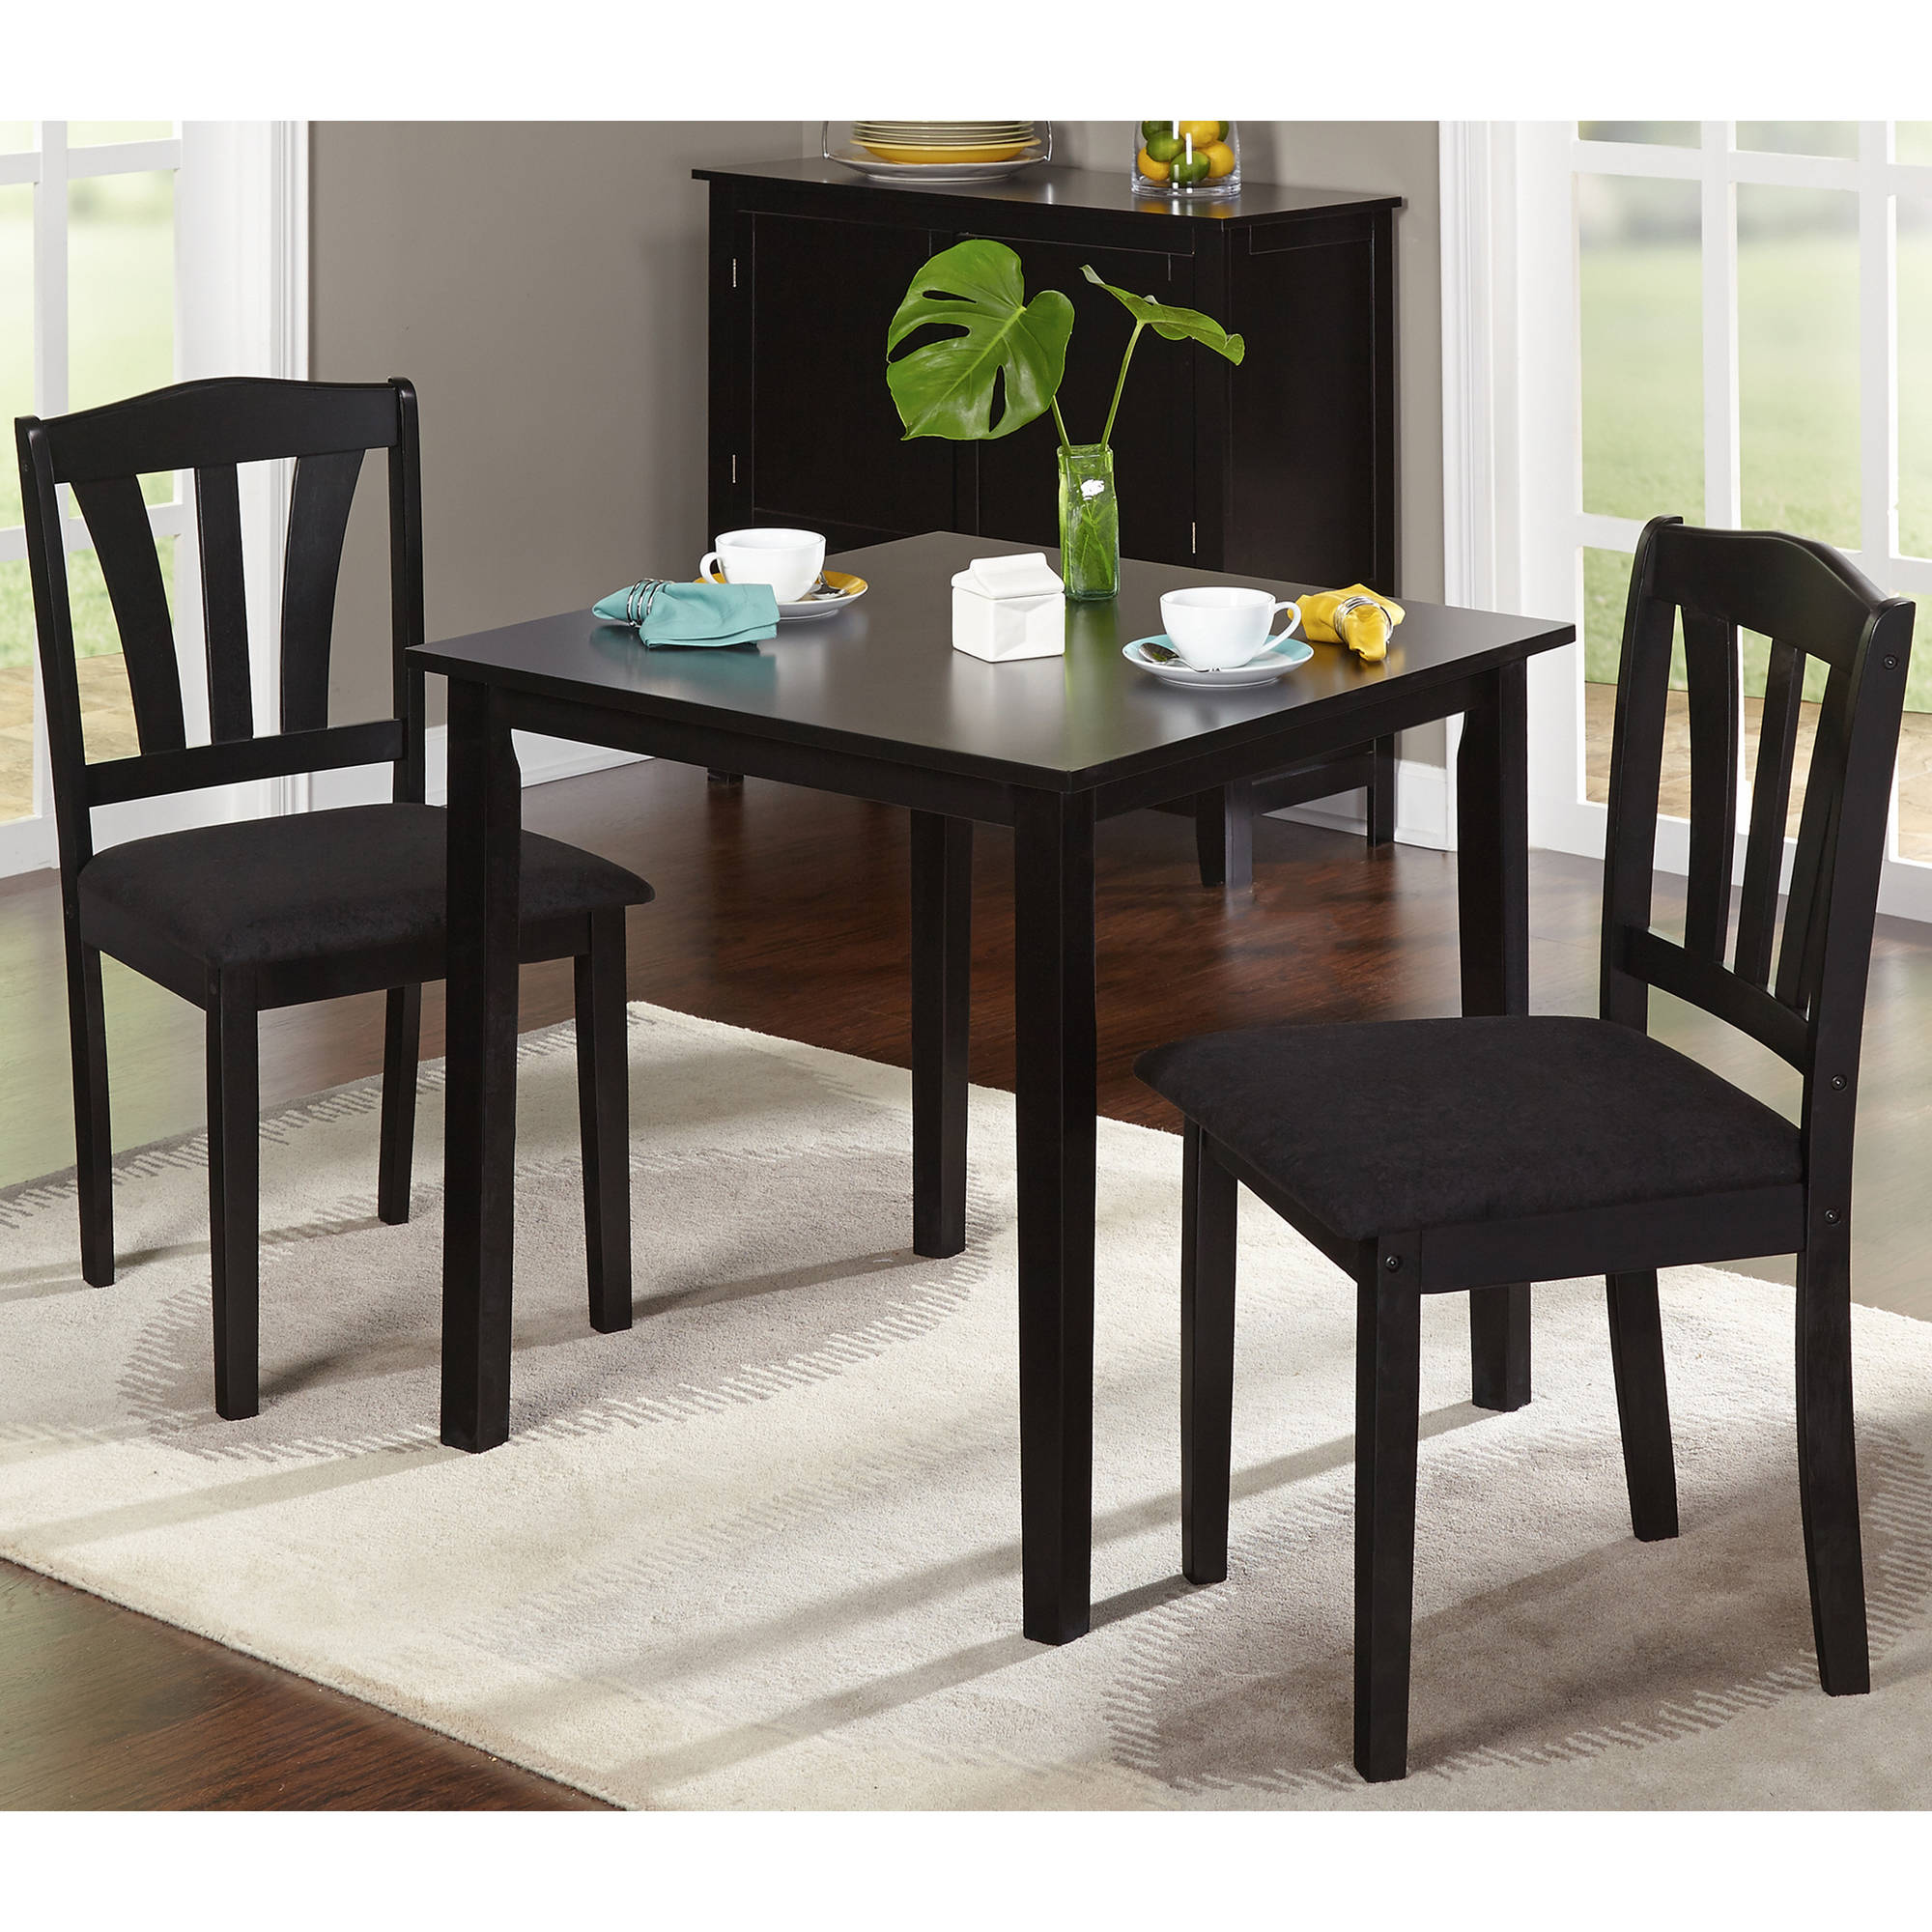 Terrific Metropolitan 3 Piece Dining Set Multiple Finishes Download Free Architecture Designs Remcamadebymaigaardcom